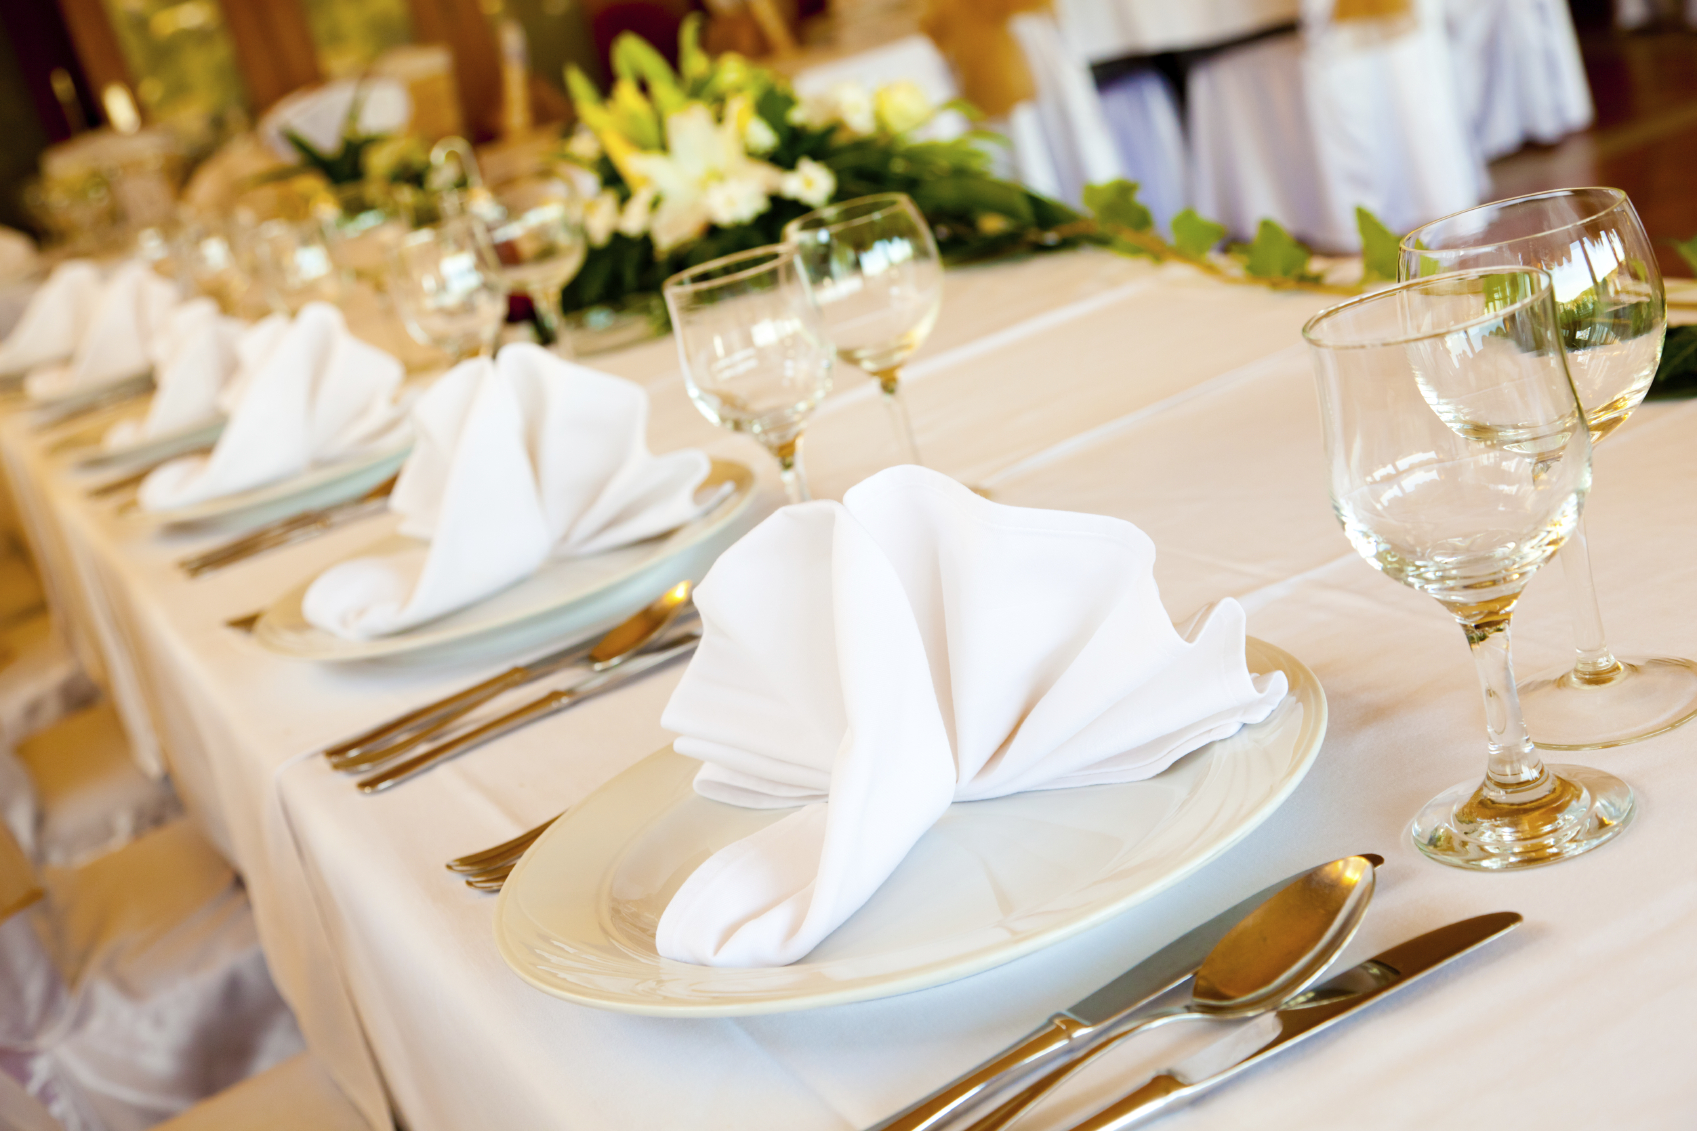 Linen service atlanta ga classic touch cleaners for Wedding dress cleaning atlanta